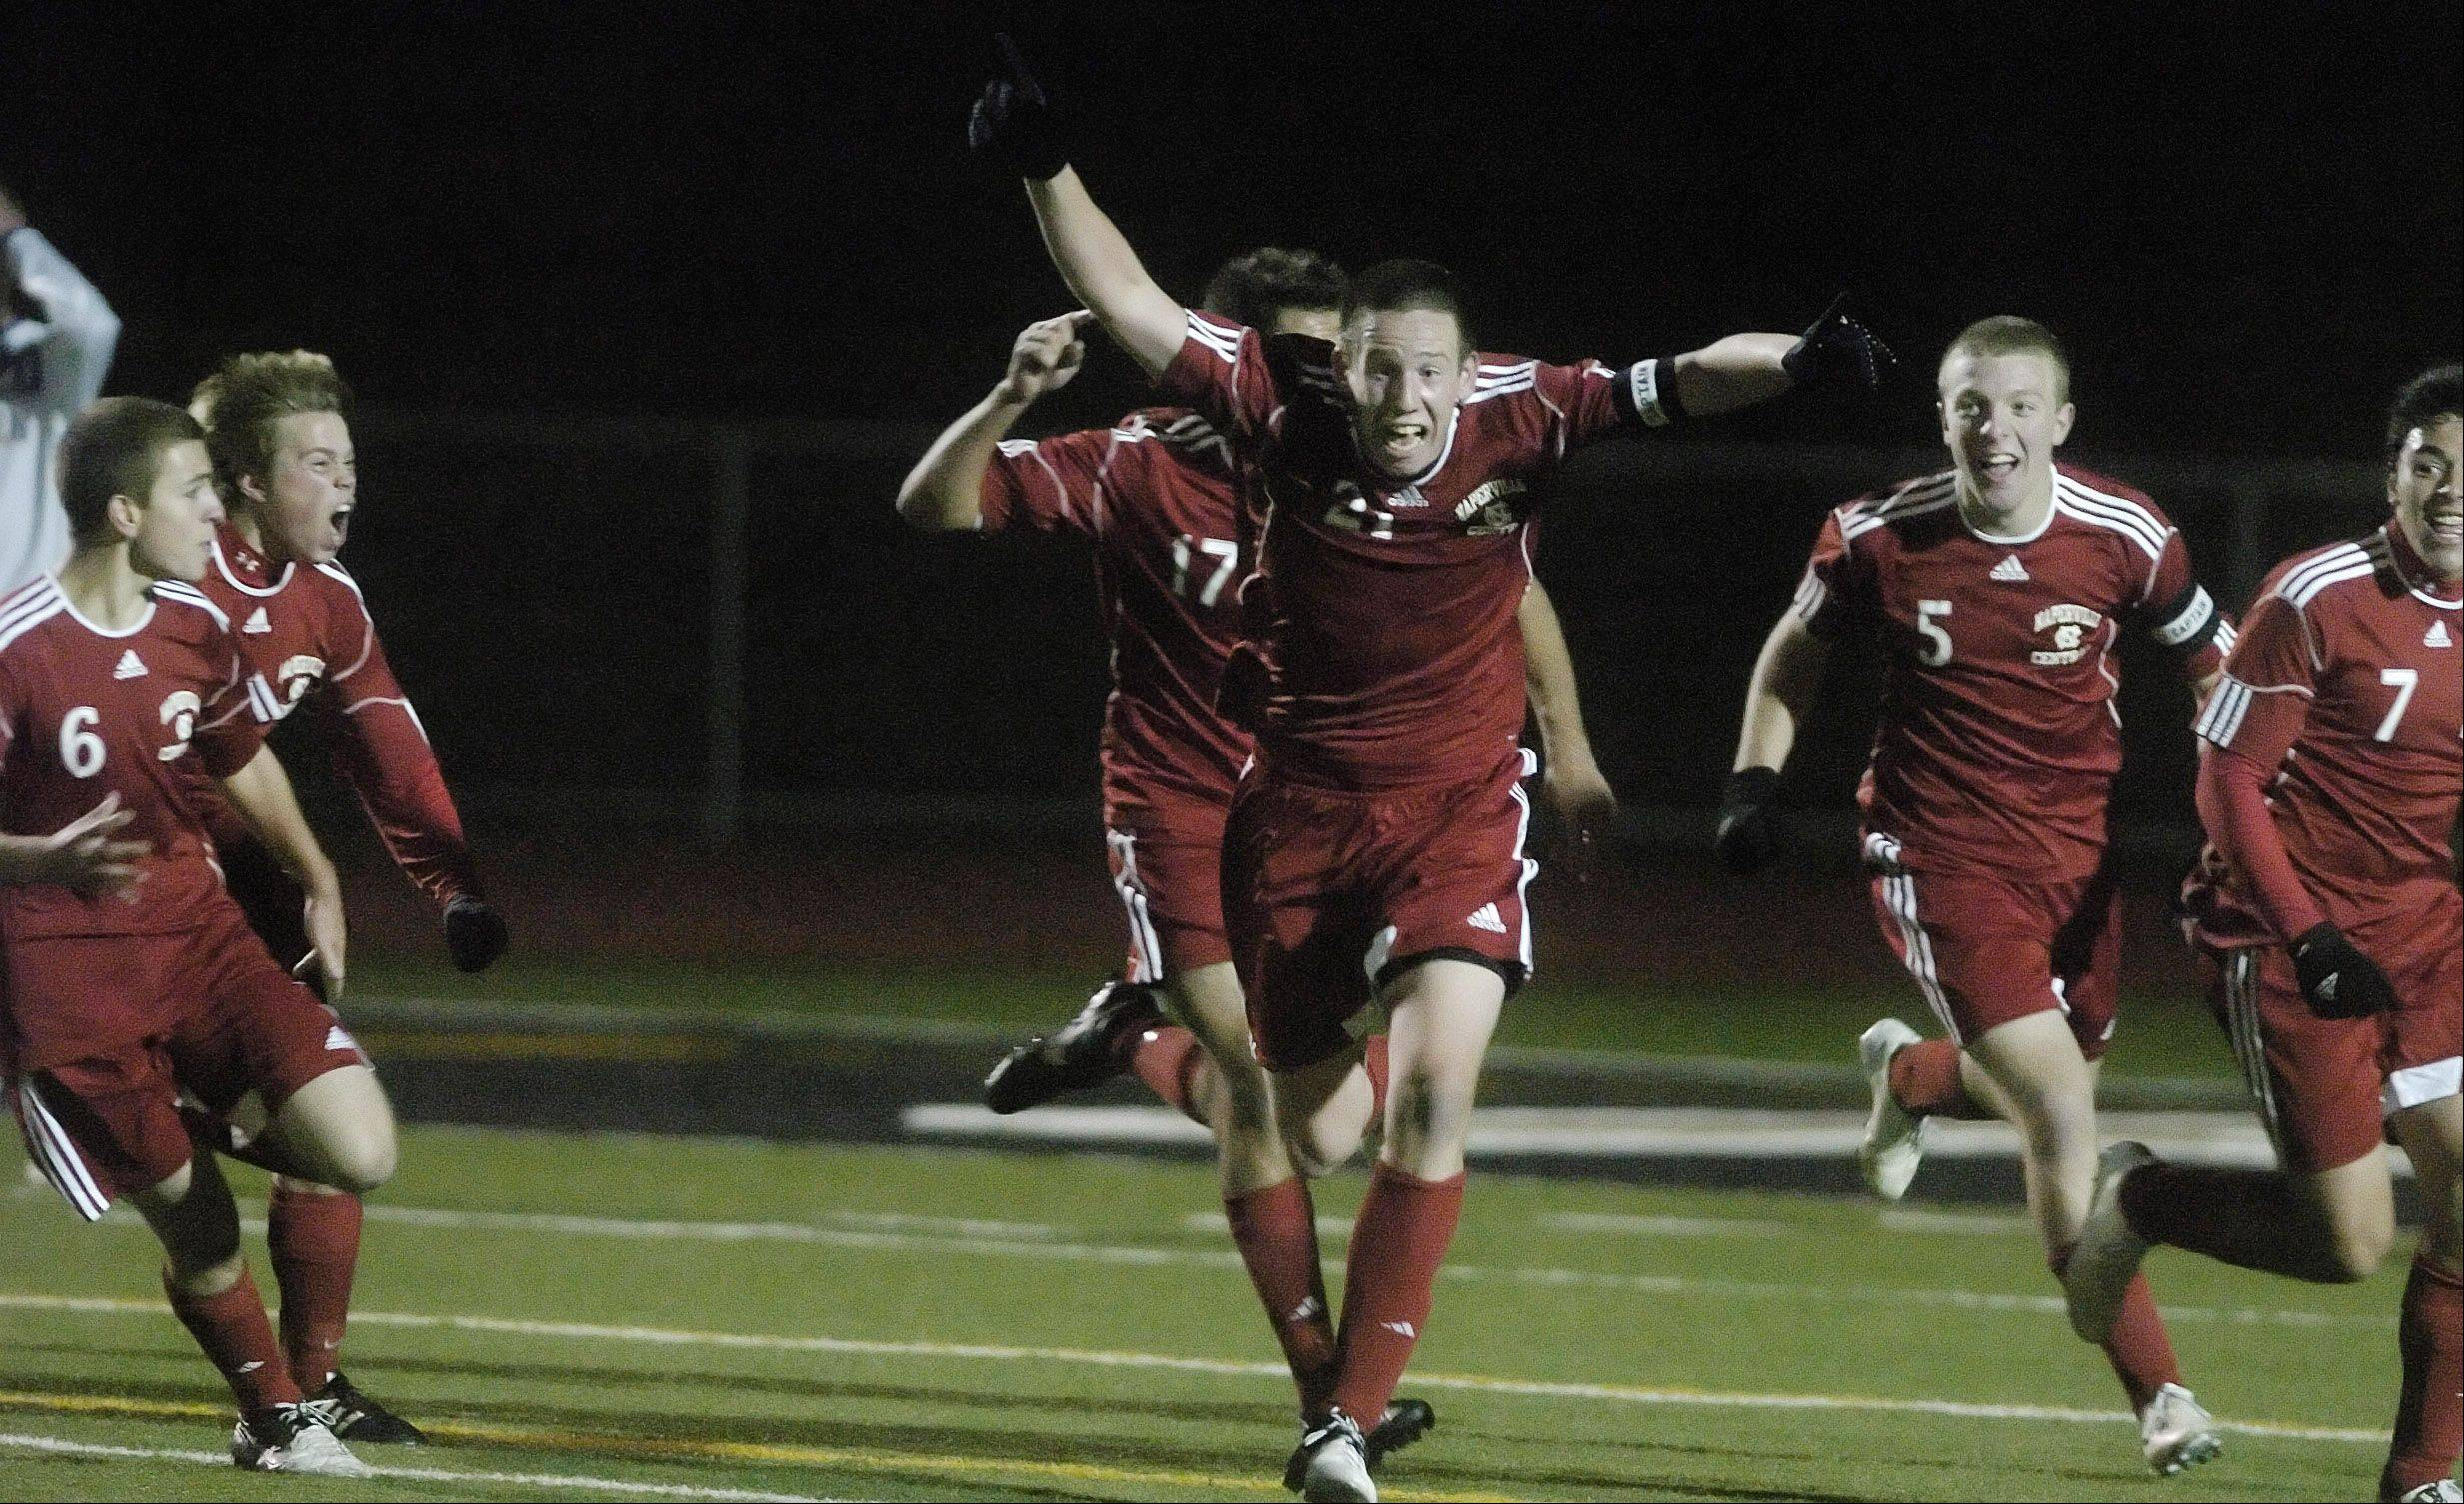 Jack Patrick of Naperville Central celebrates scoring a goal that tied the game during the Warren vs. Naperville Central Class 3A State Final in Frankfort Saturday.